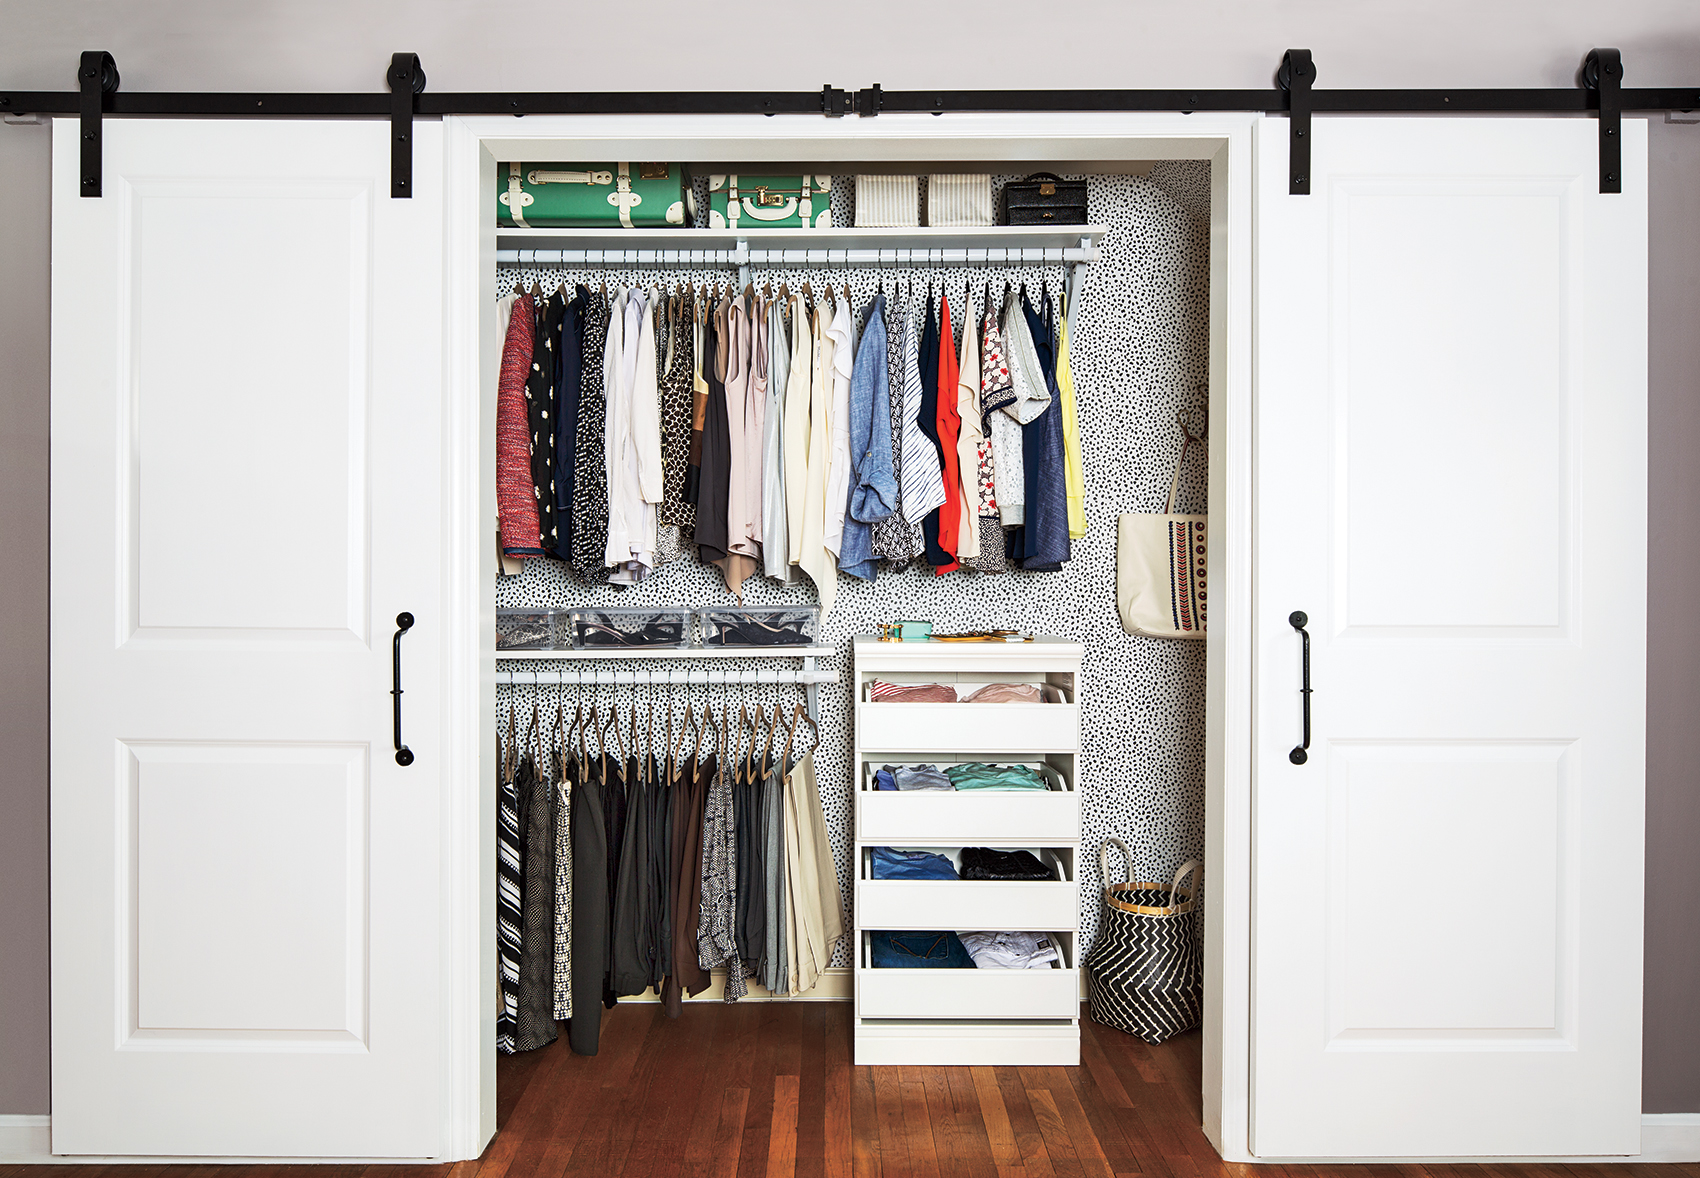 Organized closet with clothes hanging up in it